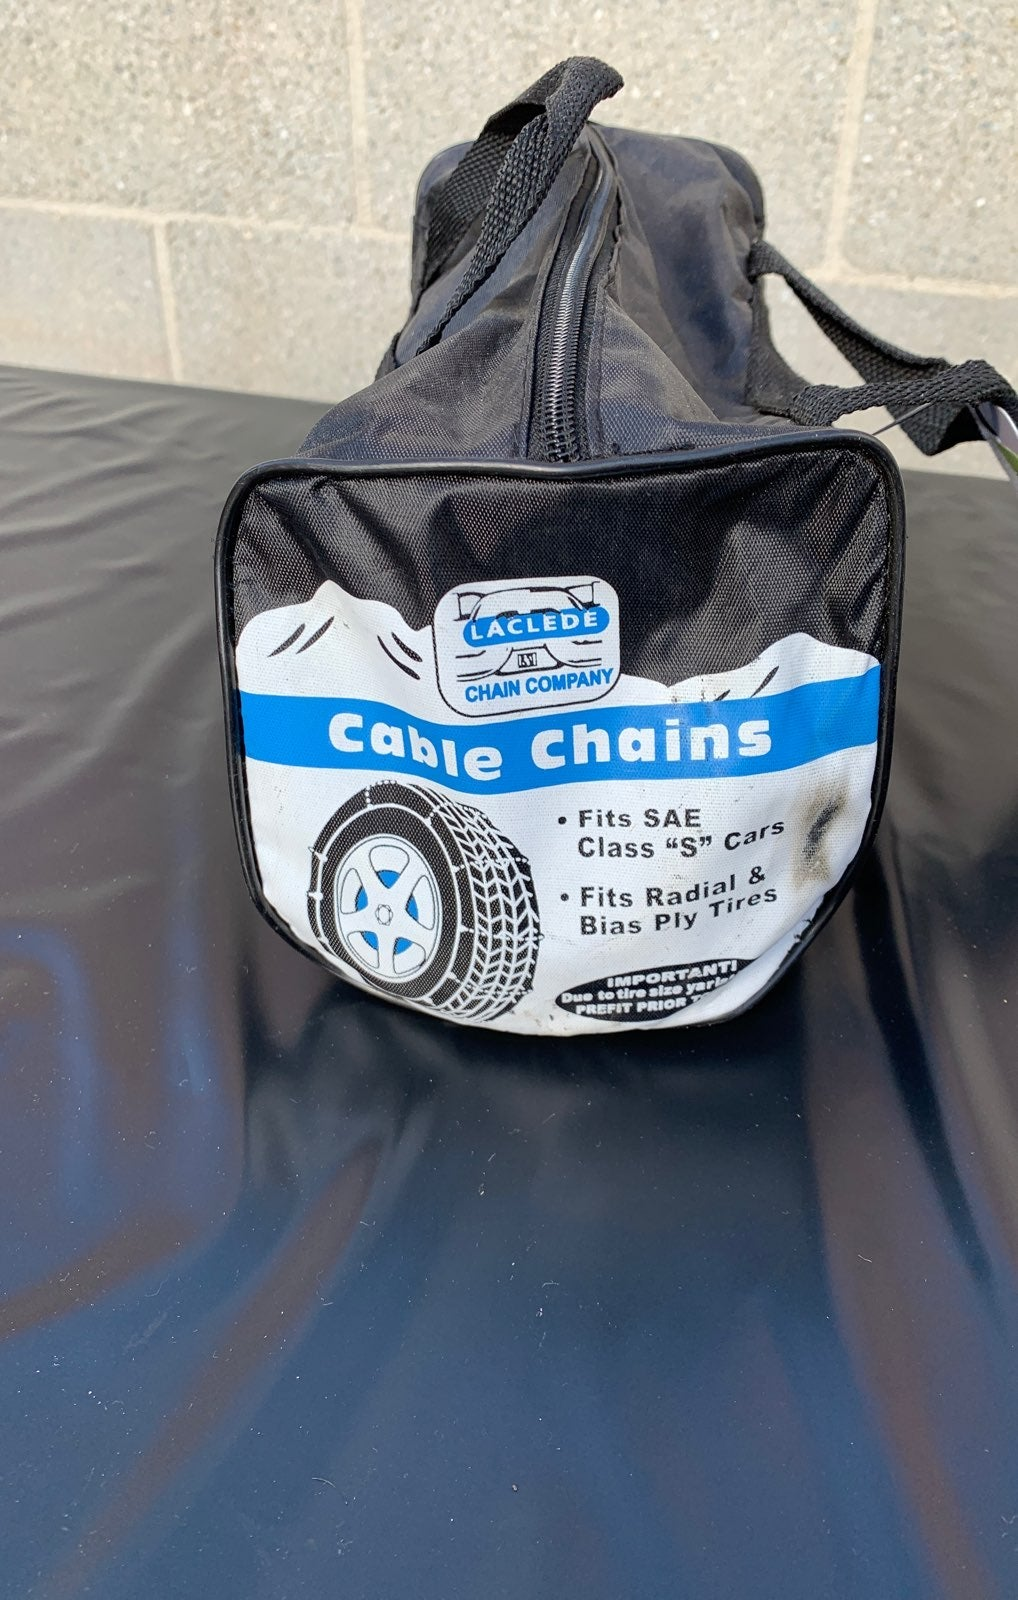 Laclede Passenger Cable chains